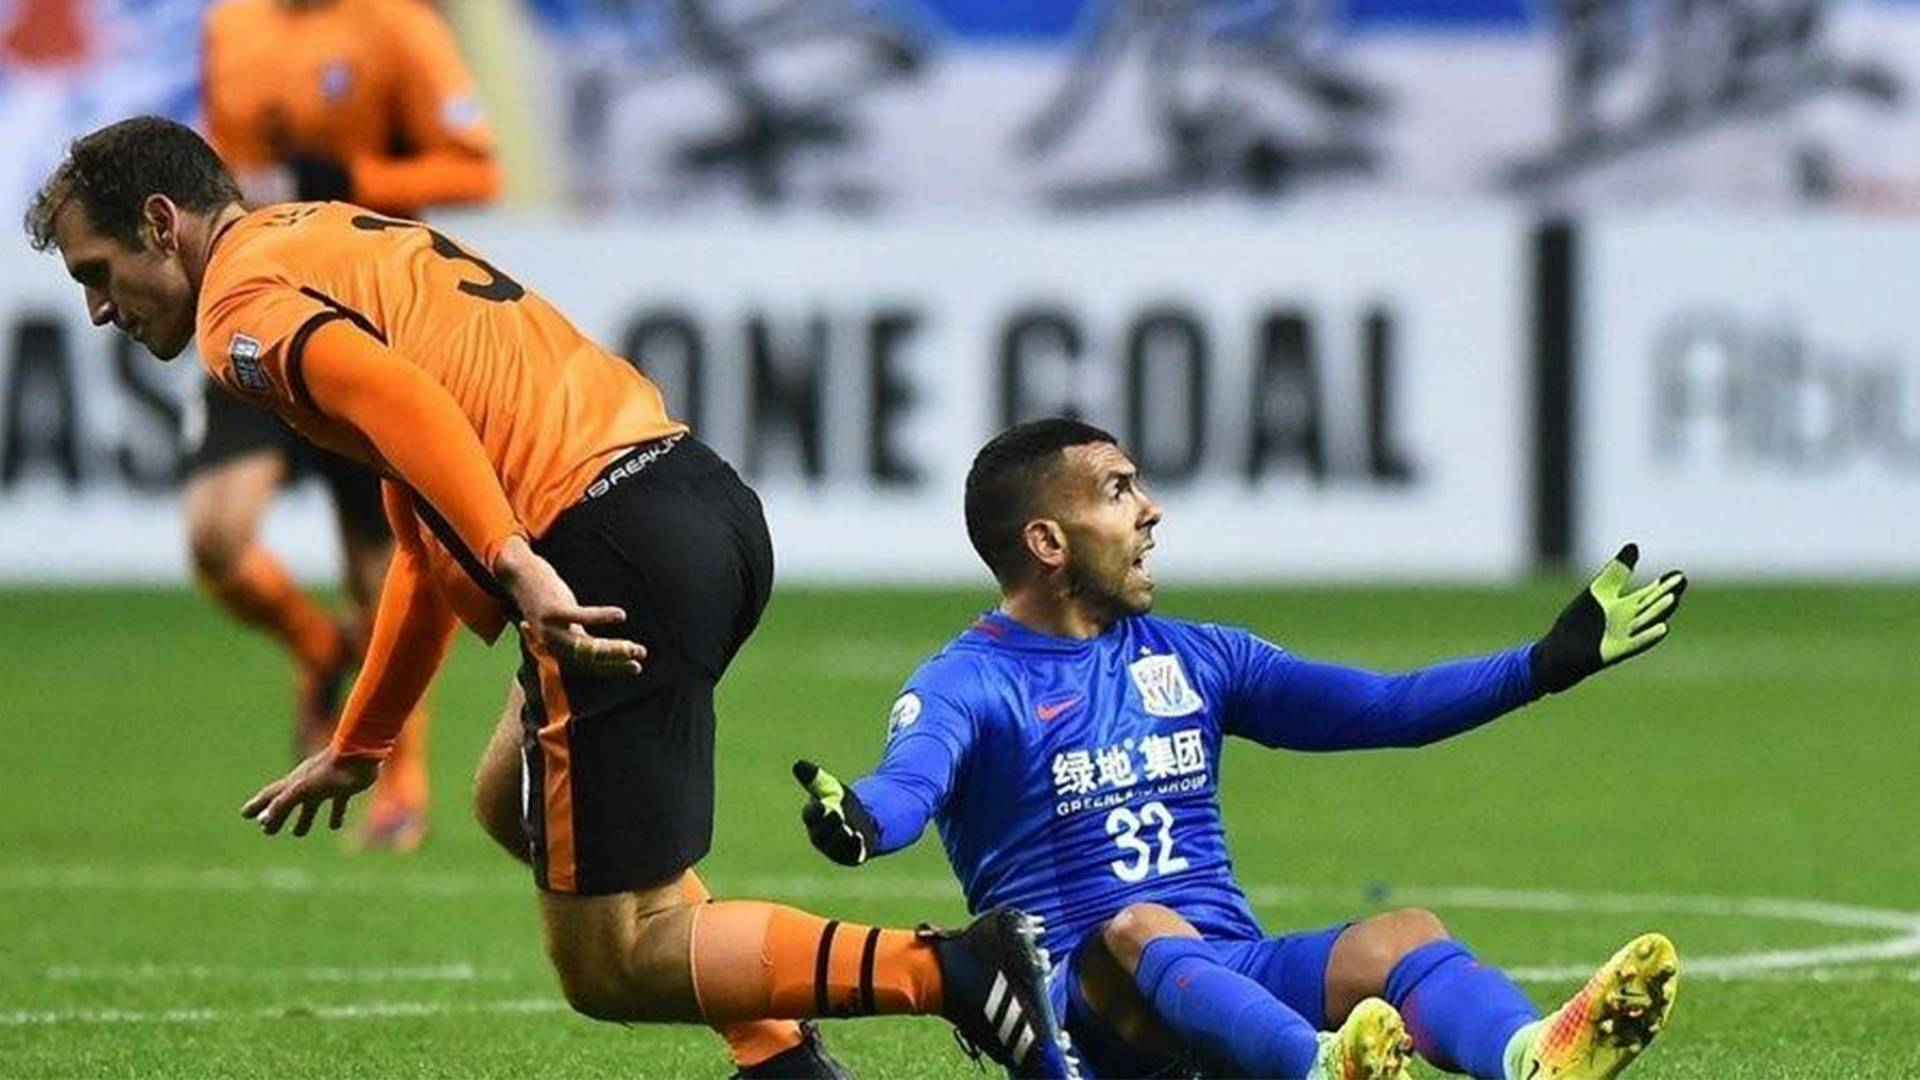 Shanghai Shenhua official denies Tevez banishment claims